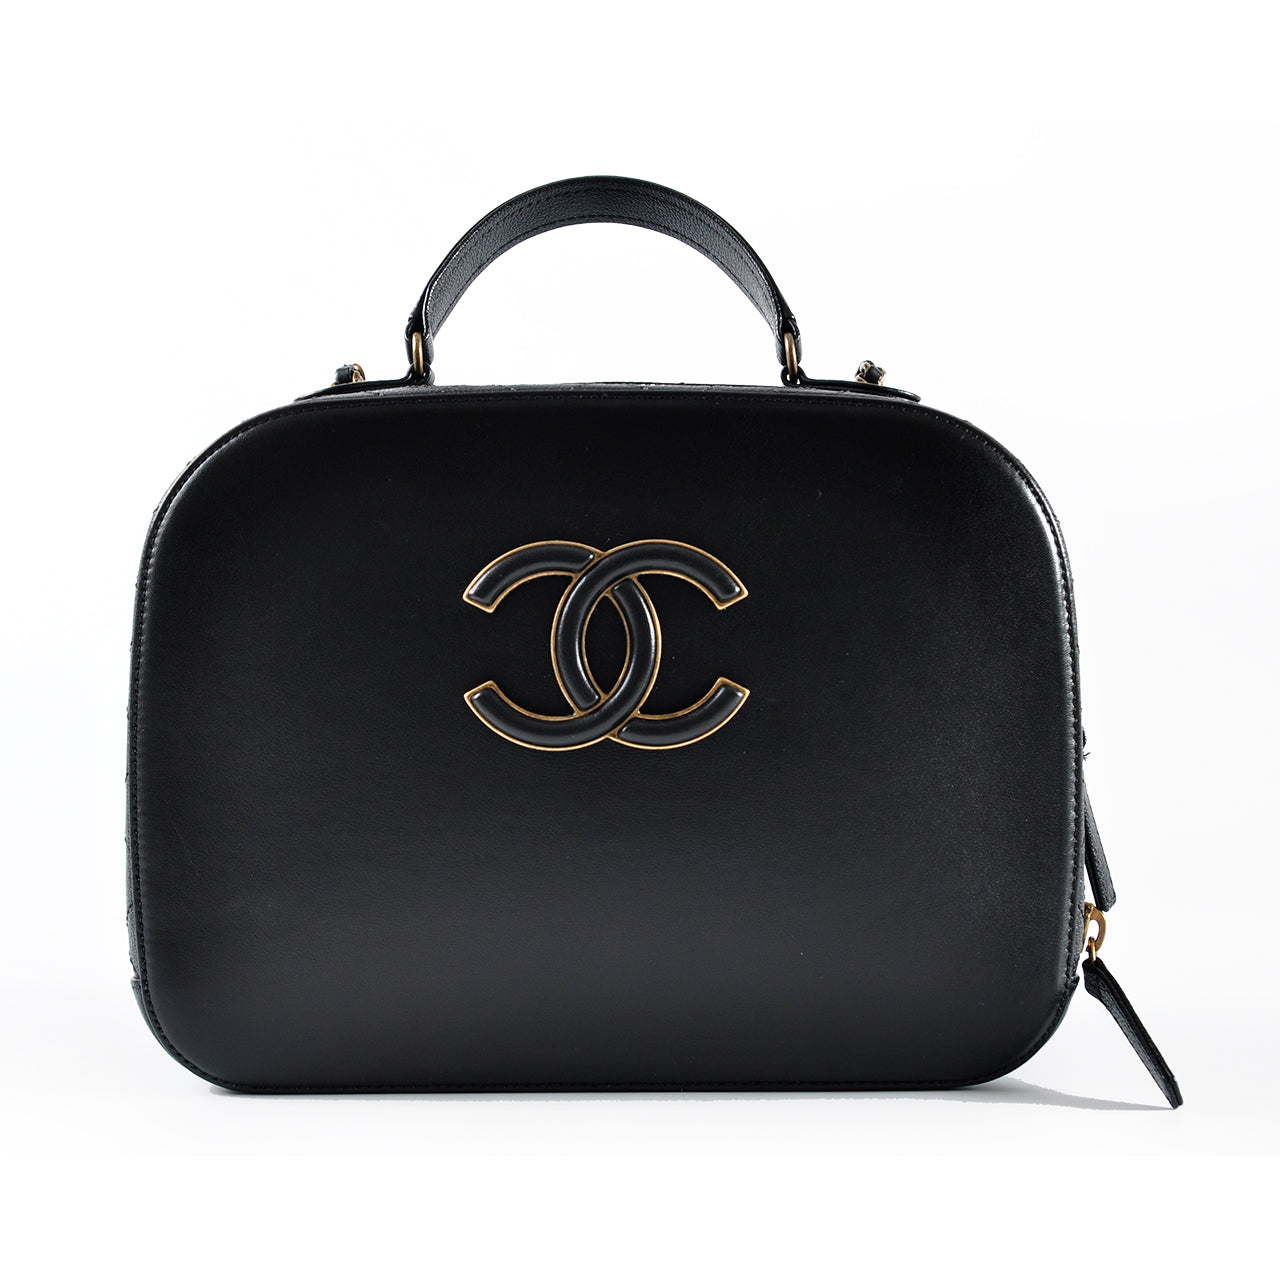 Chanel Black Crossbody Satchel in Gold Hardware - Glampot